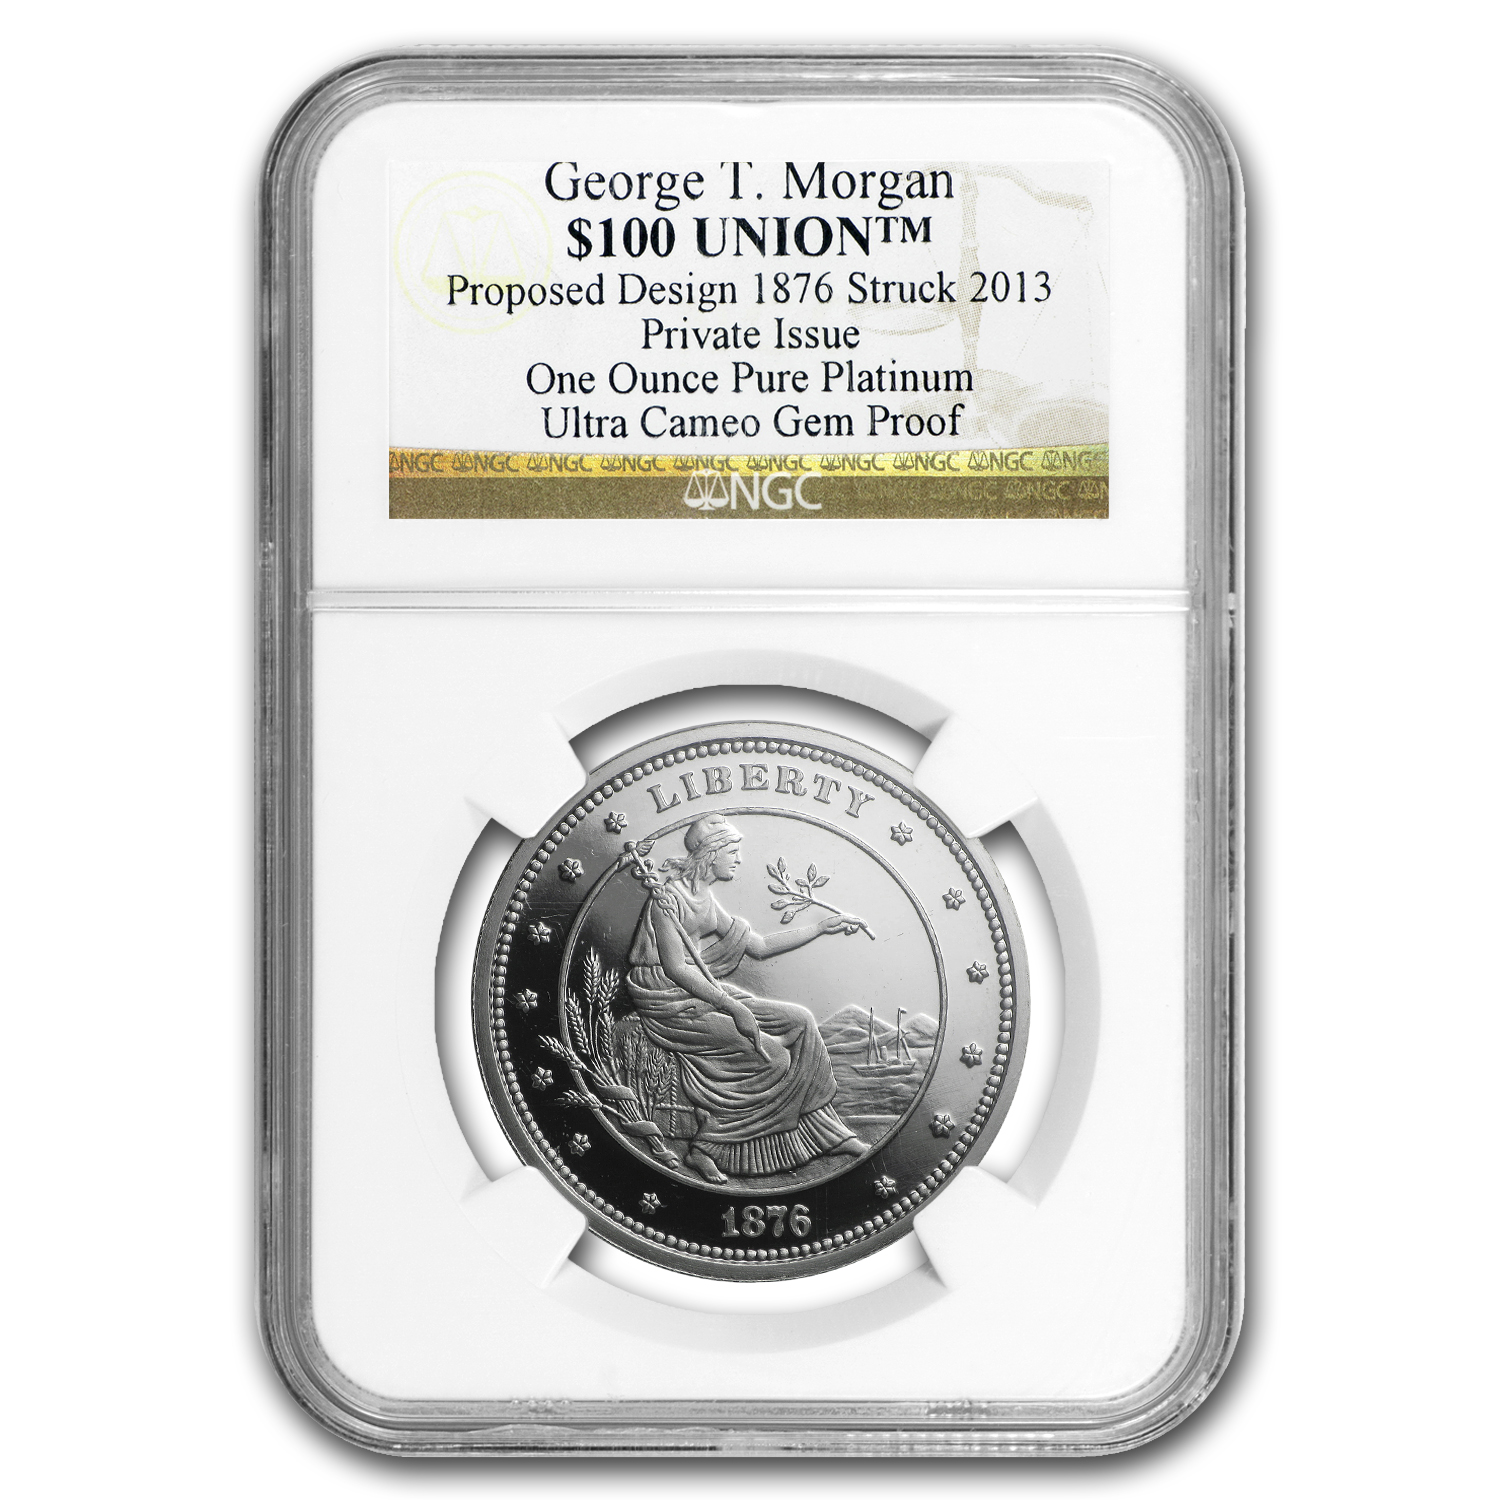 1 oz $100 Platinum Union George T. Morgan GEM Proof-UCAM NGC